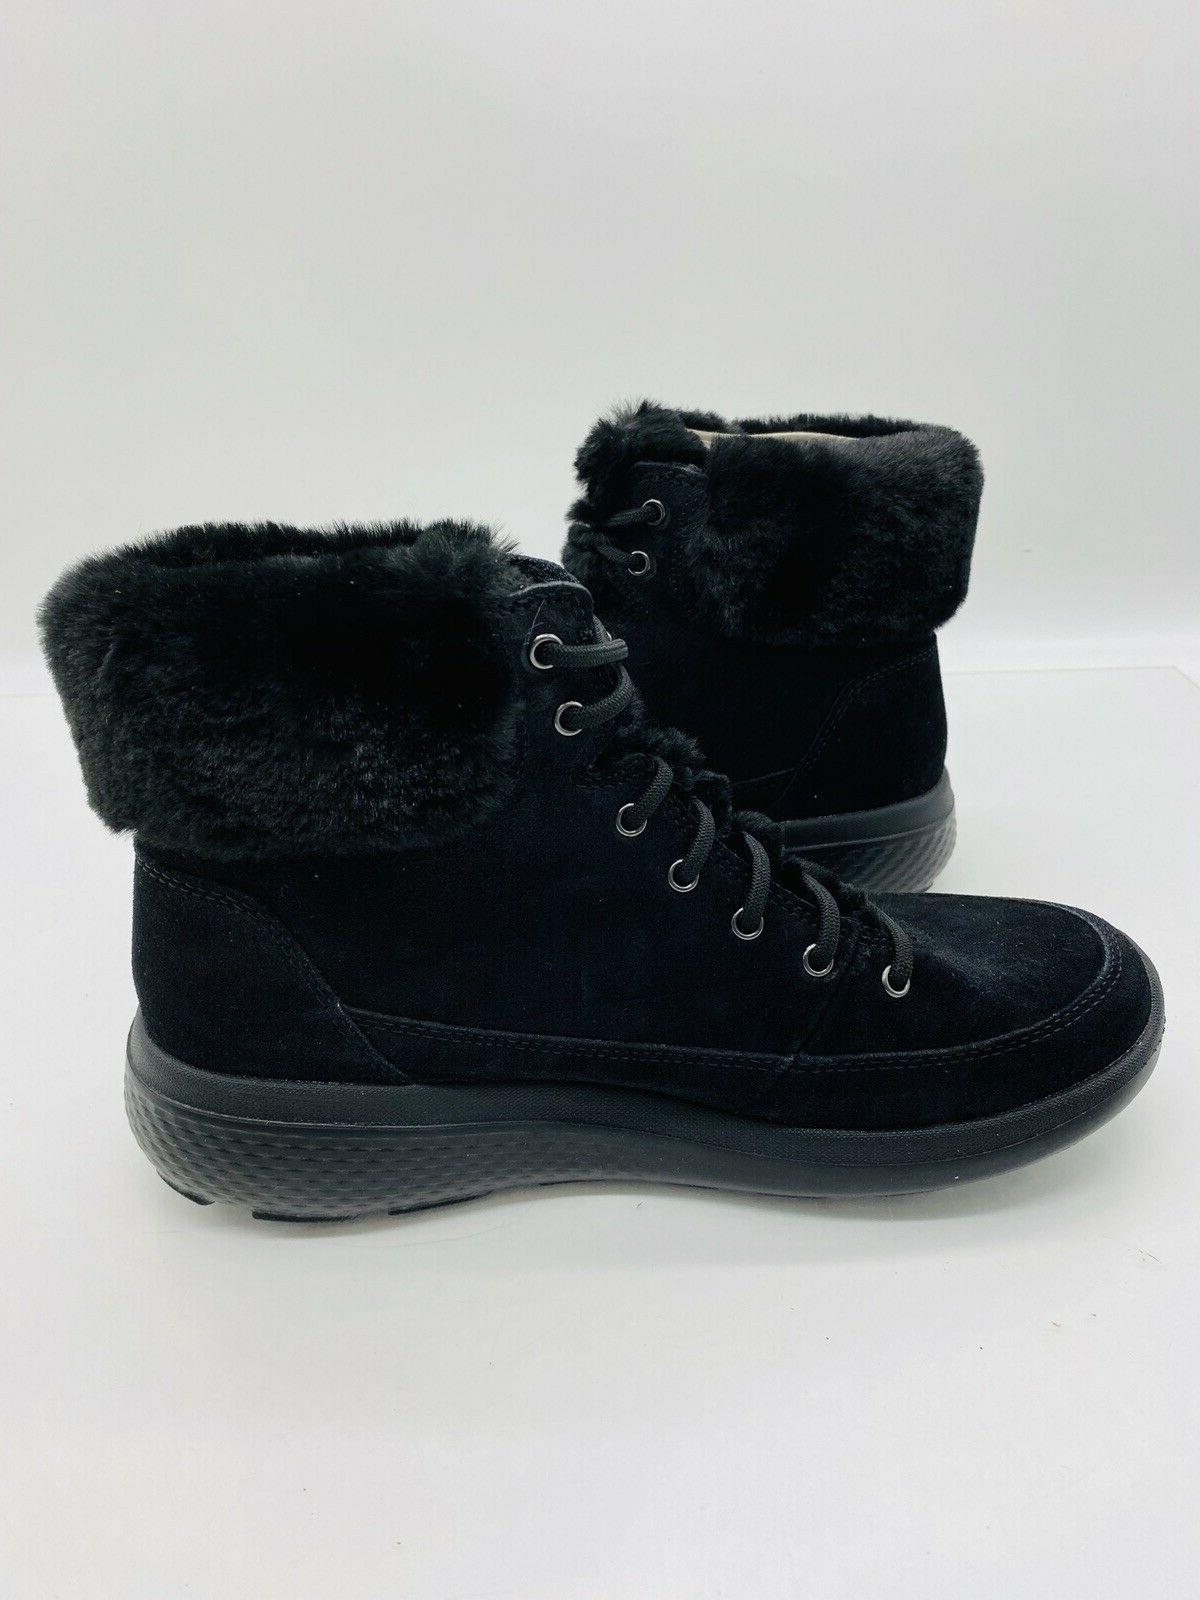 Skechers Chill Resistant Boots Black